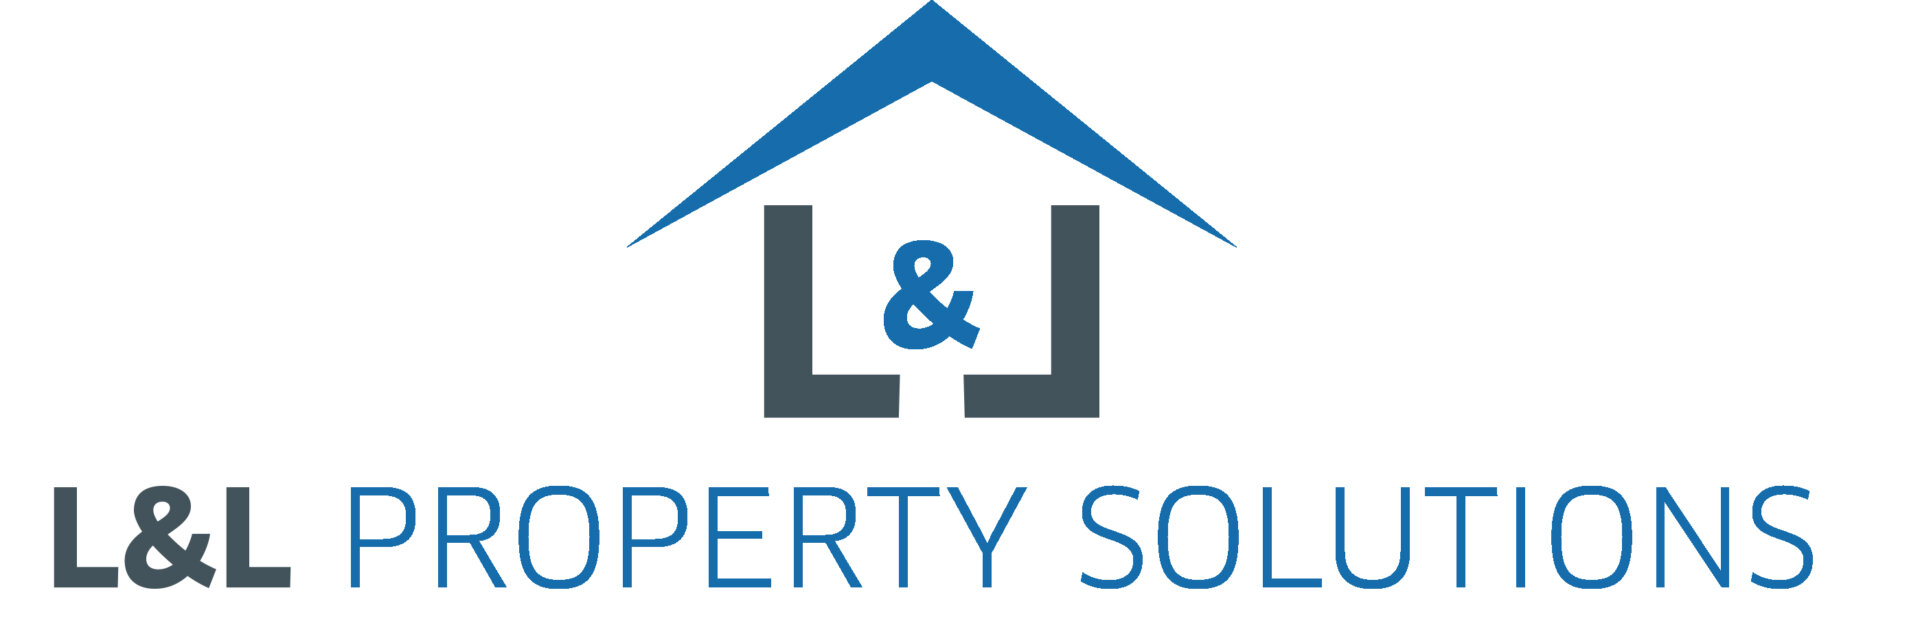 L&L Property Solutions logo